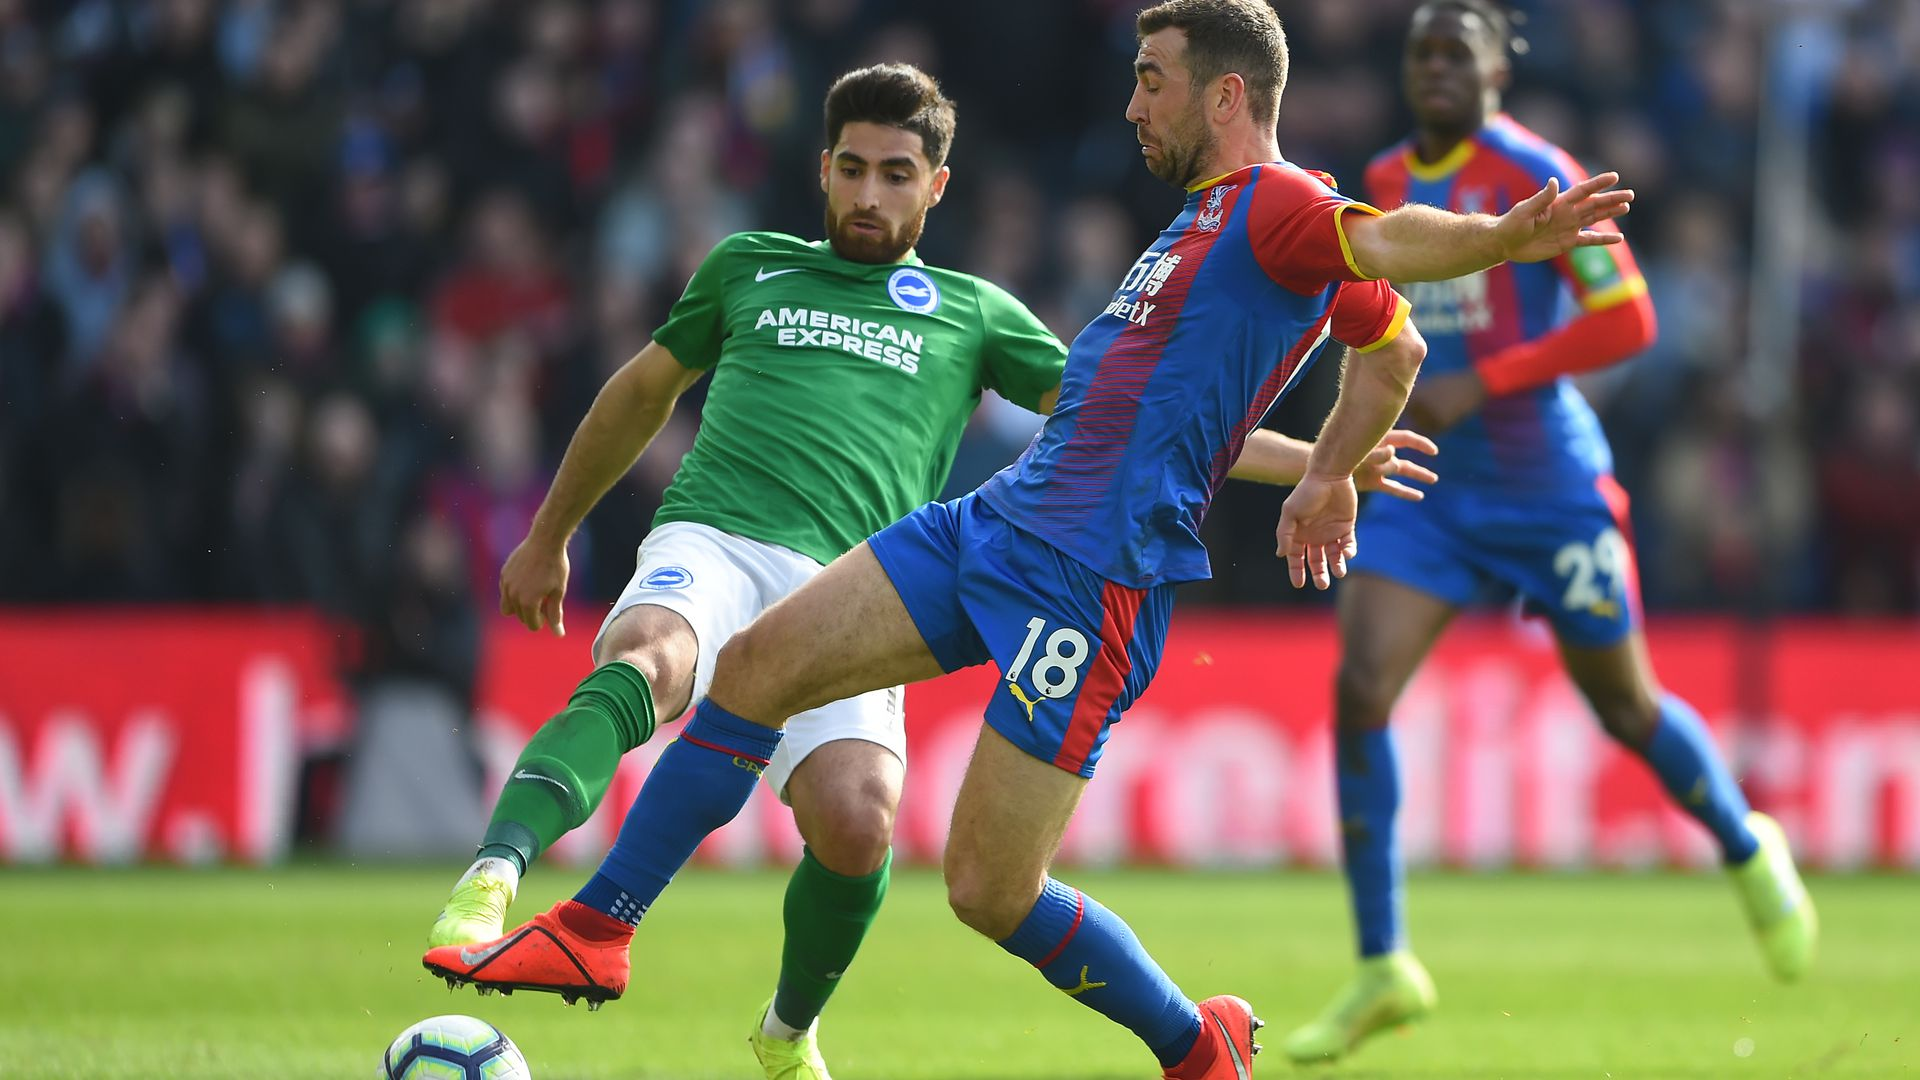 James McArthur of Crystal Palace is challenged by Alireza Jahanbakhsh of Brighton & Hove Albion during the Premier League match between Crystal Palace and Brighton & Hove Albion